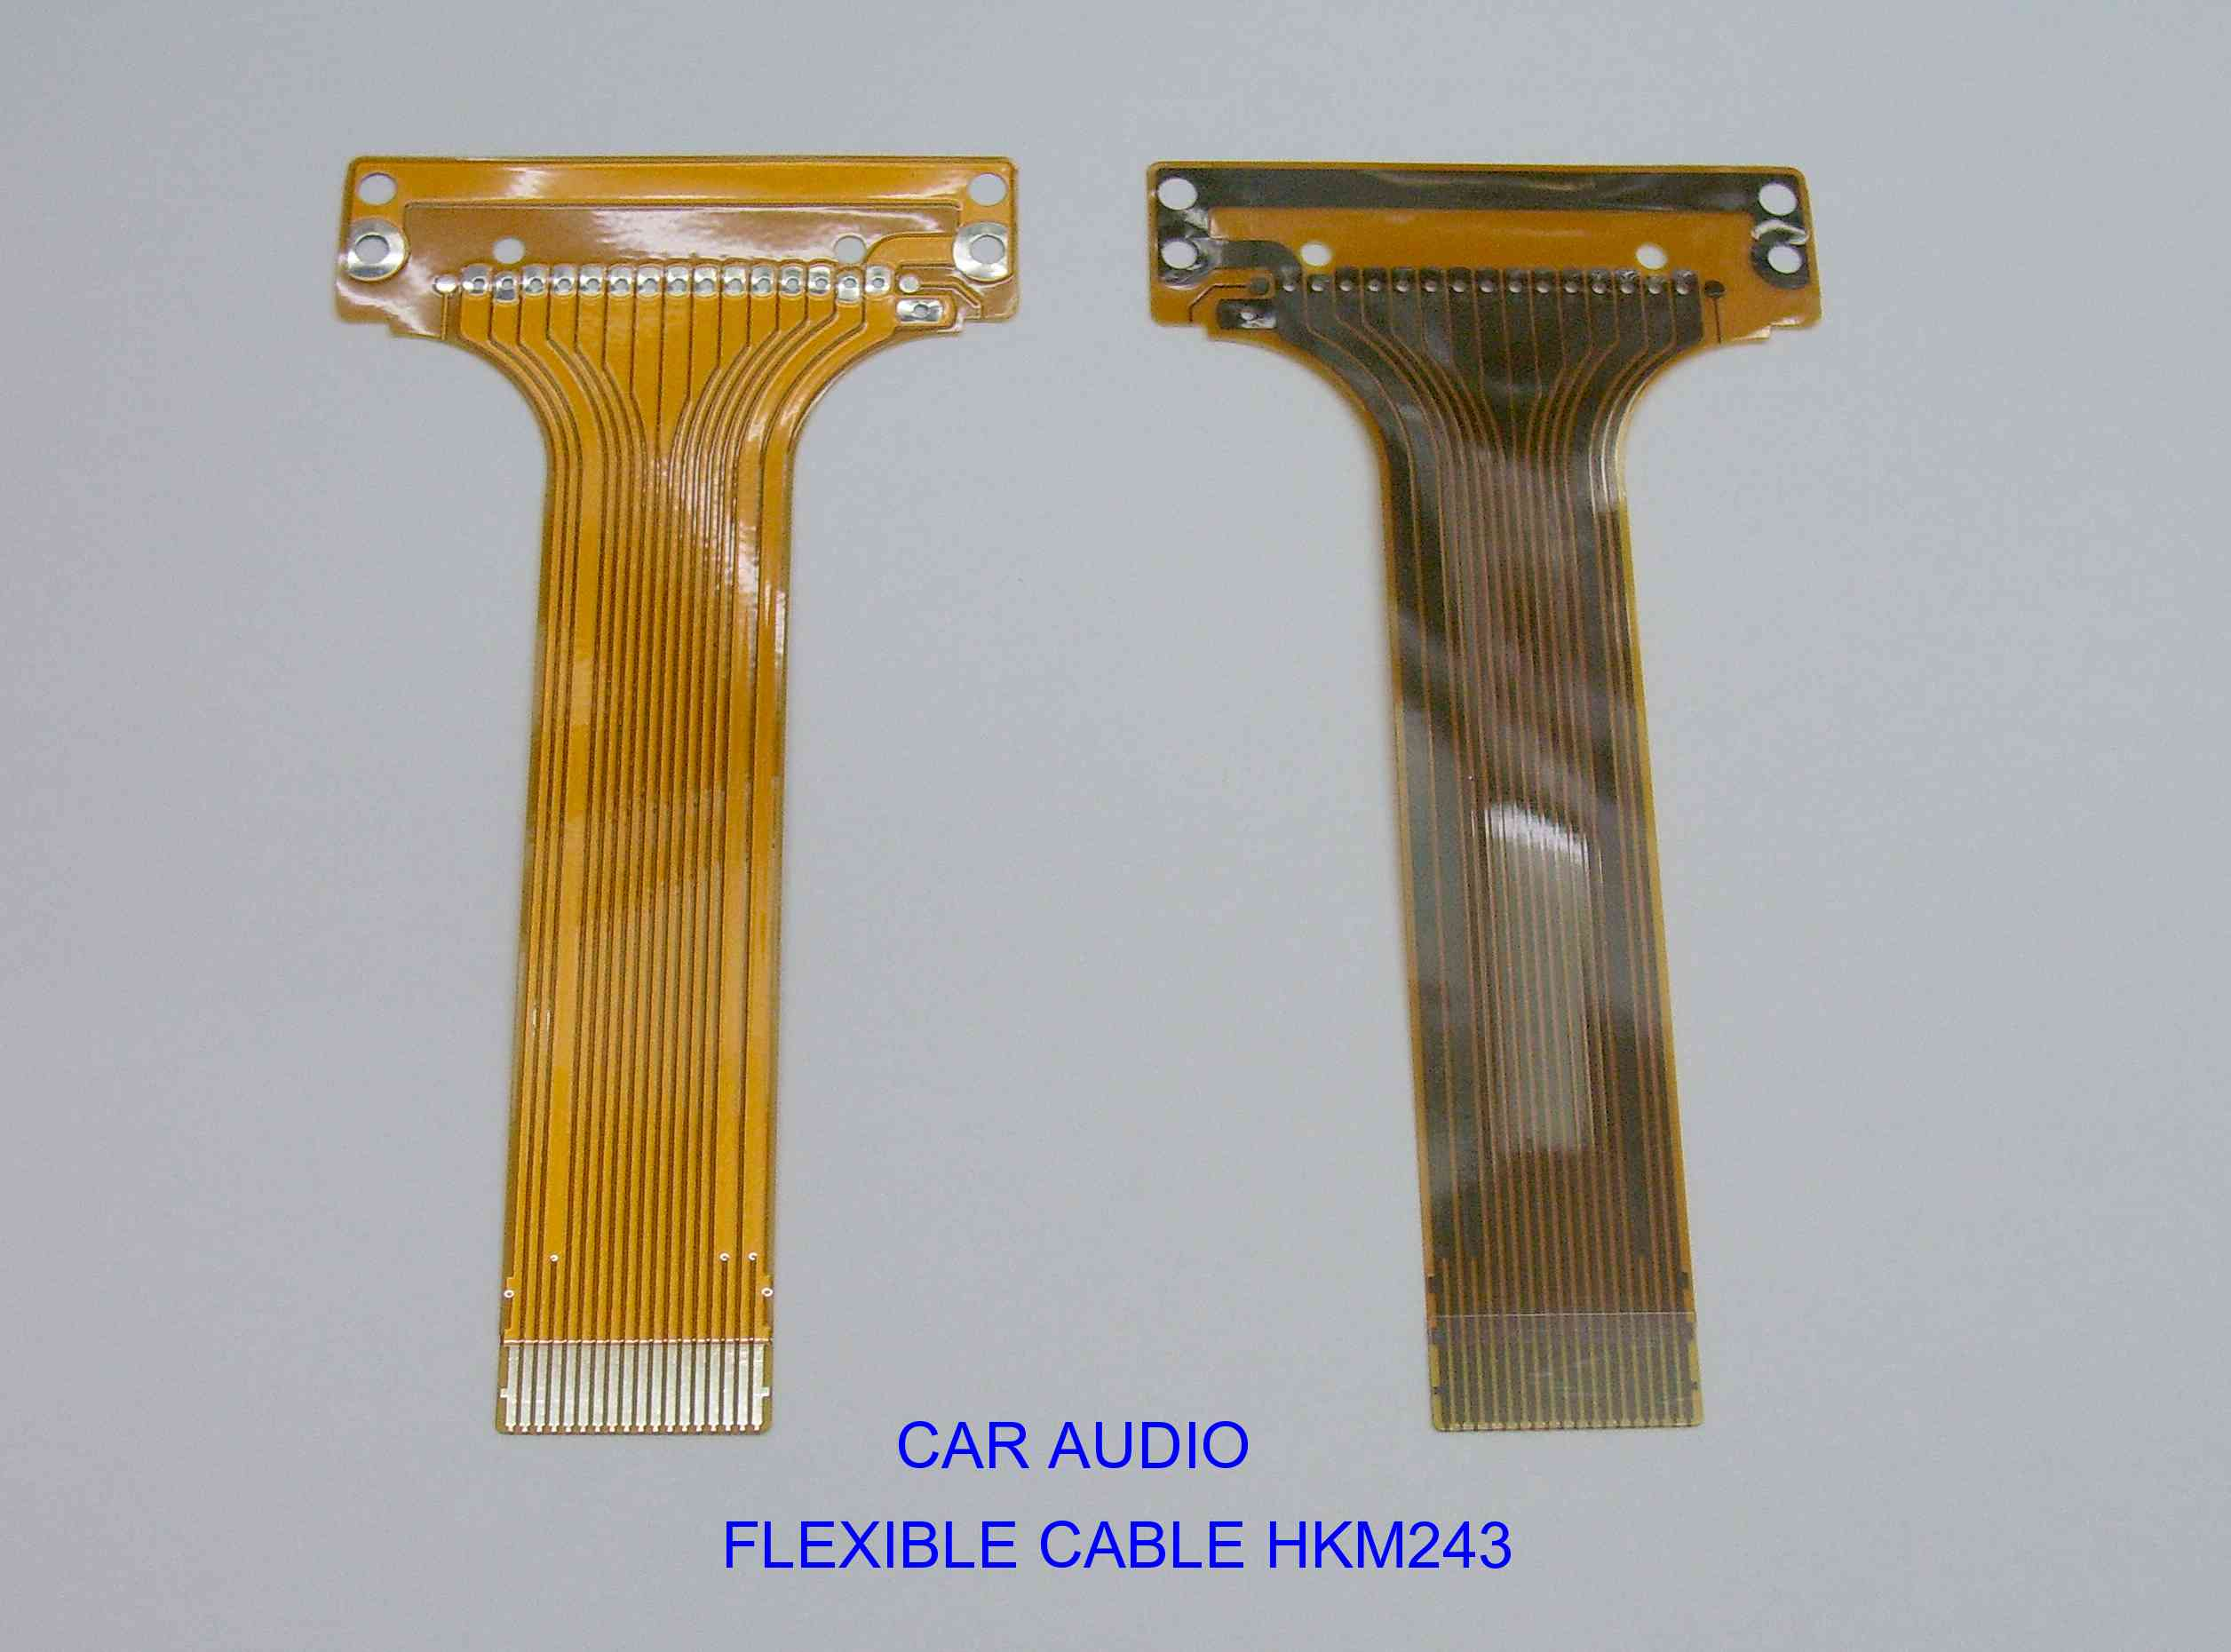 FLAT CABLE HKM243 039132801